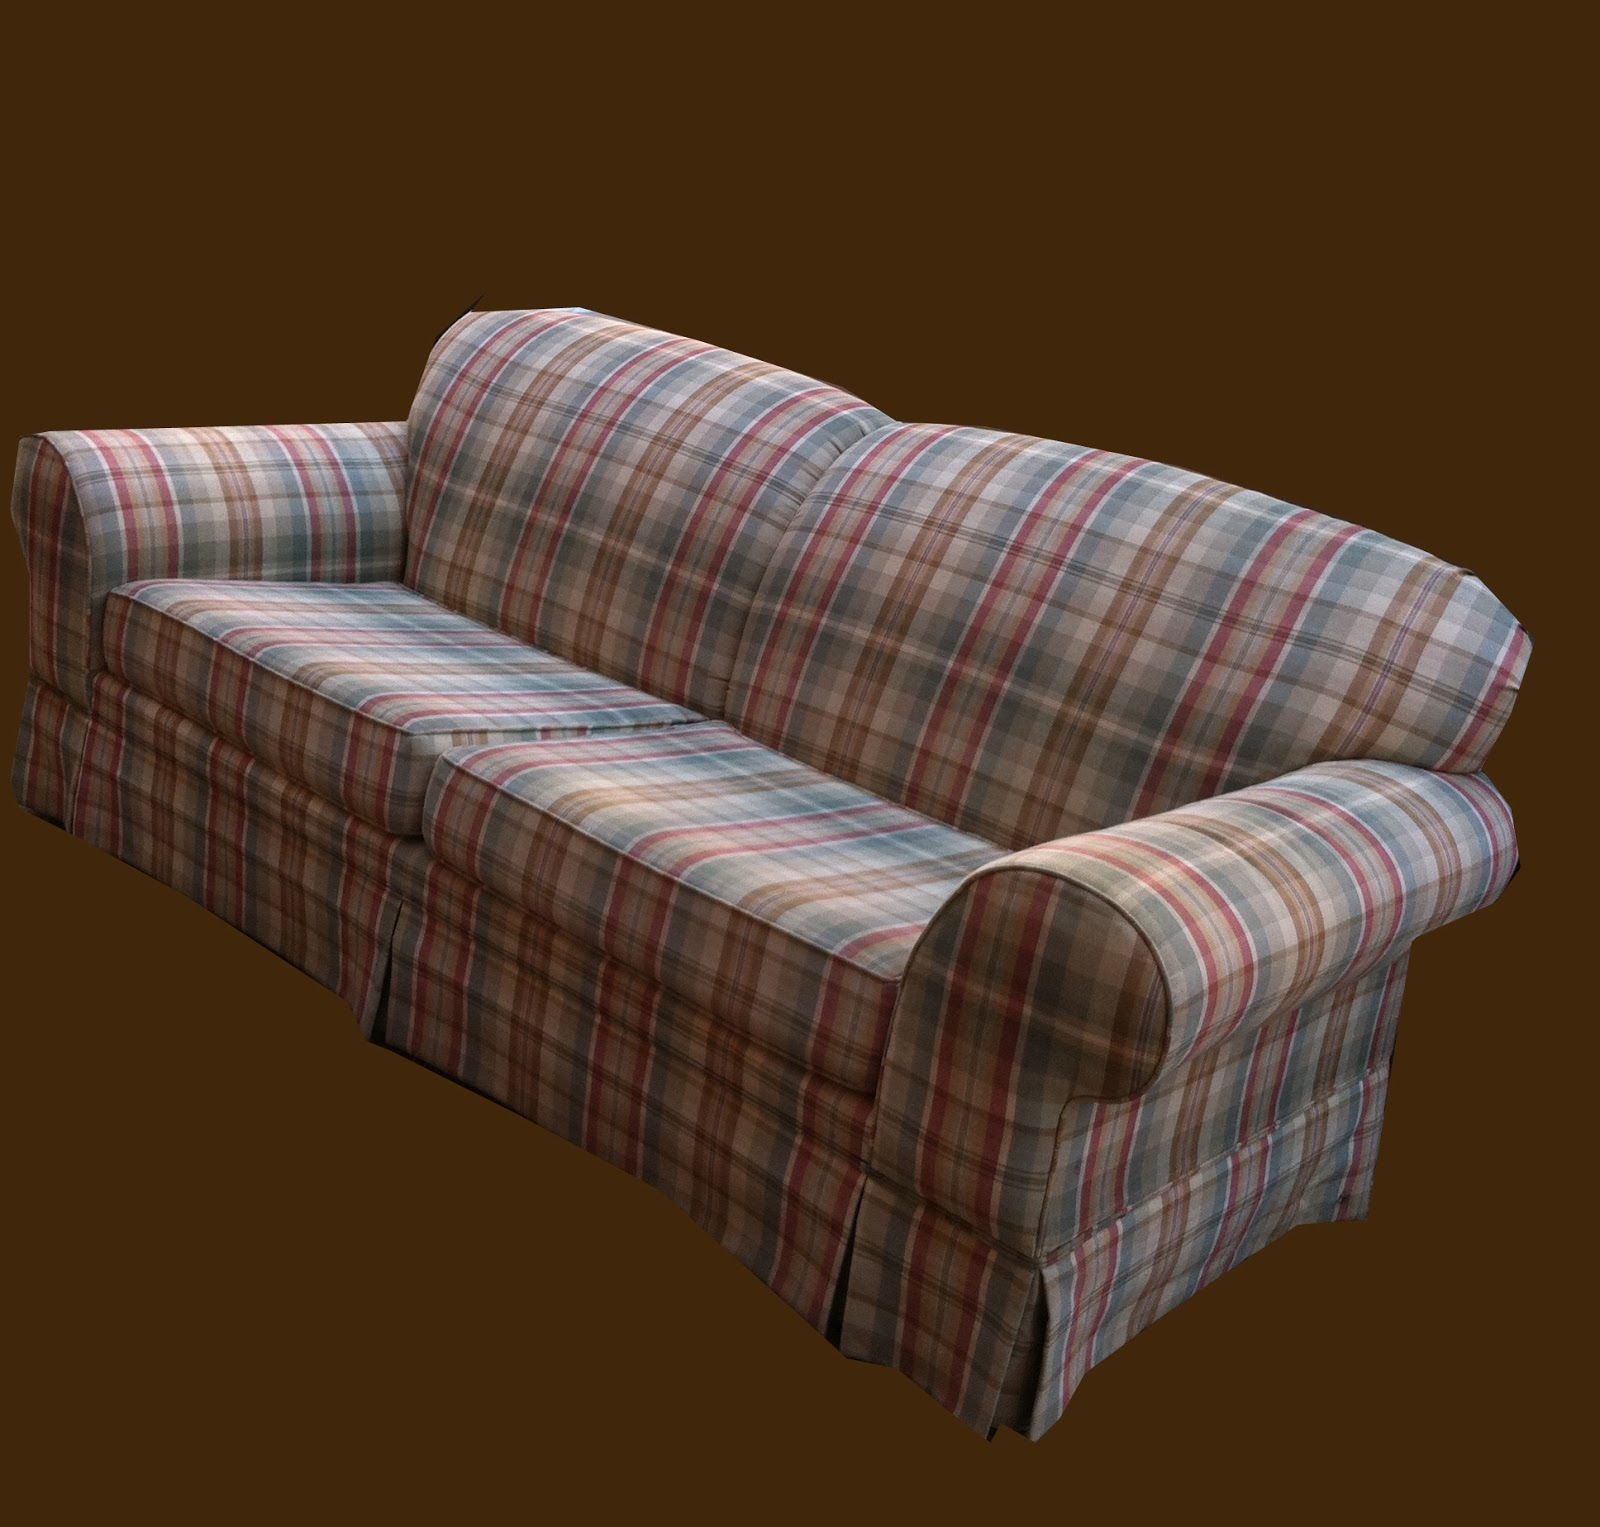 Uhuru Furniture Collectibles Plaid Sofa Sold